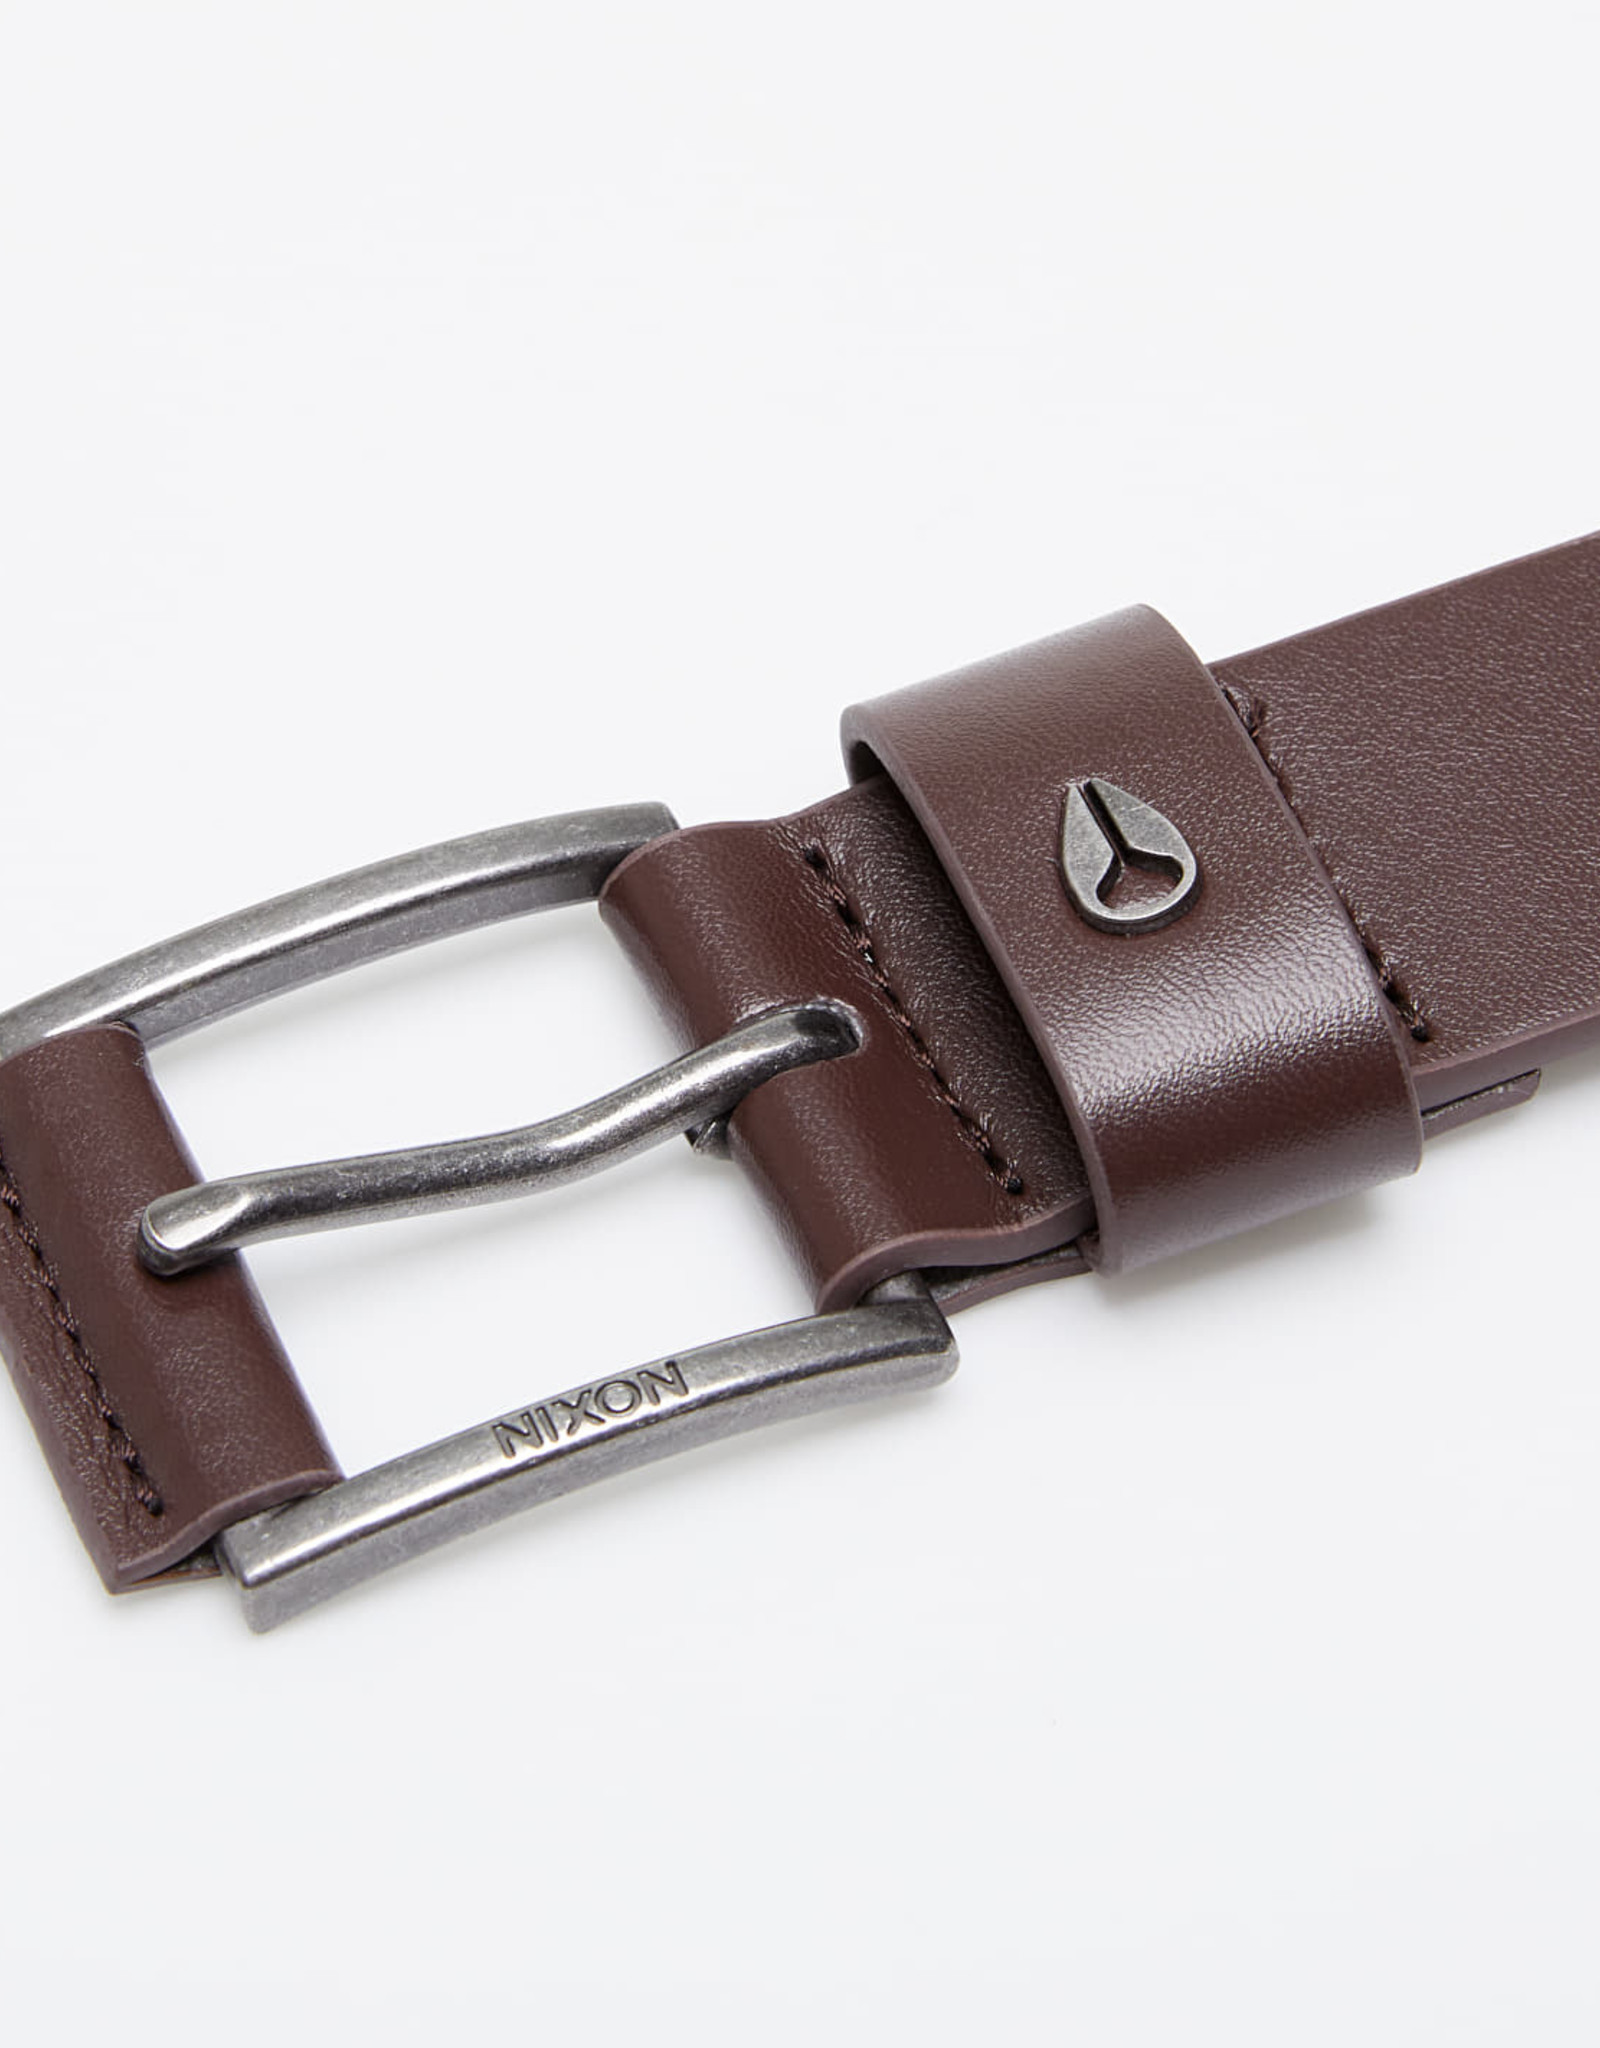 NIXON AMERICANA Leather Belt, DK Brown